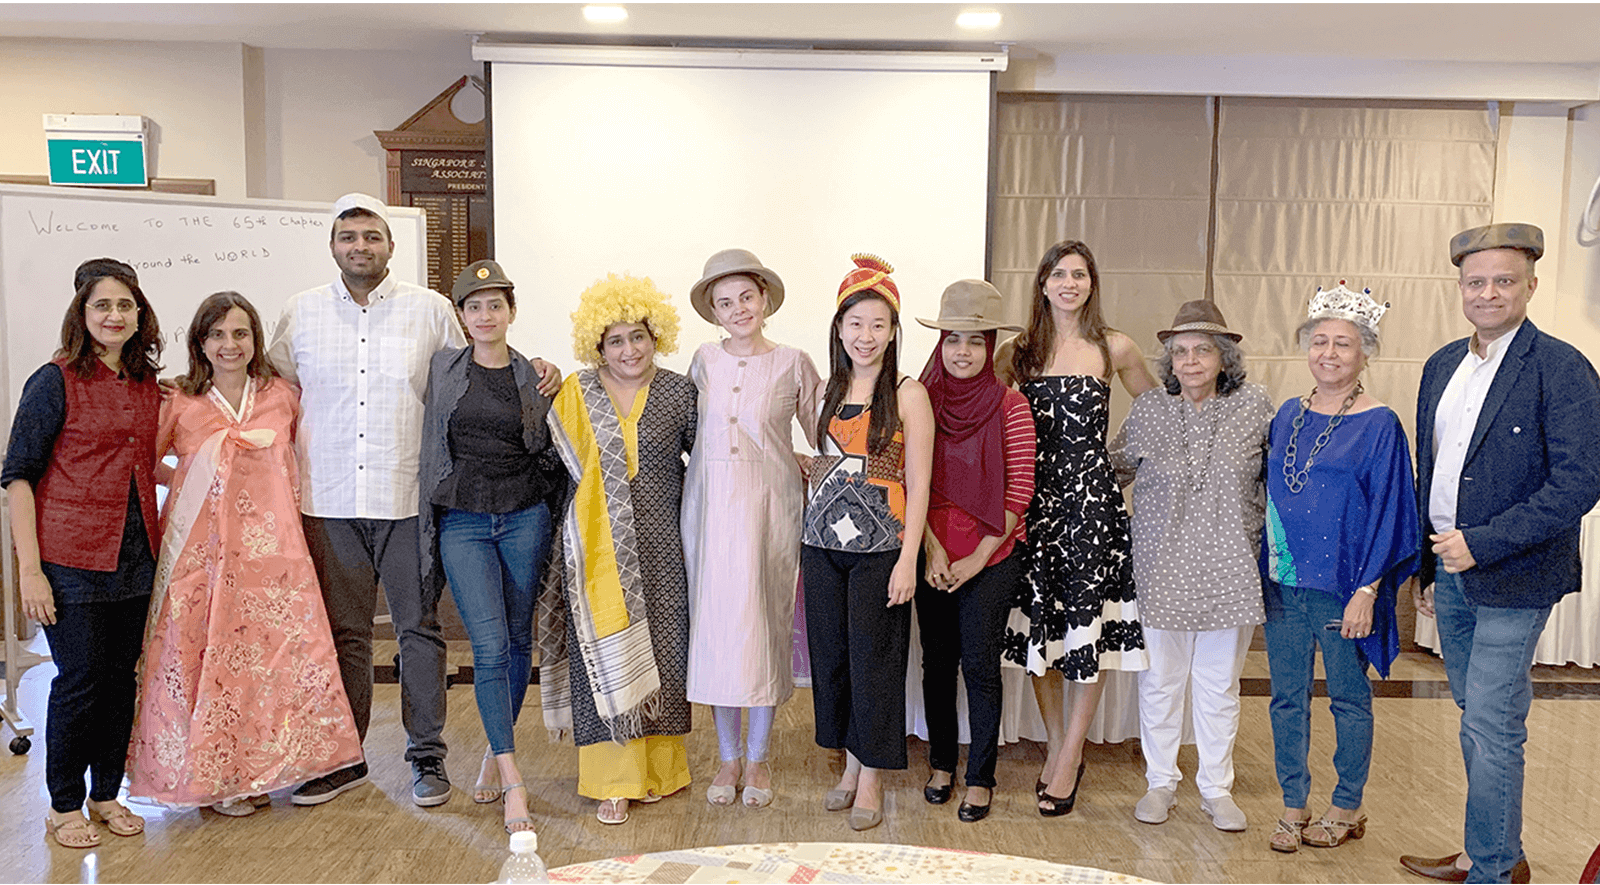 Kauai Toastmasters club gather on red carpet for awards-themed meeting